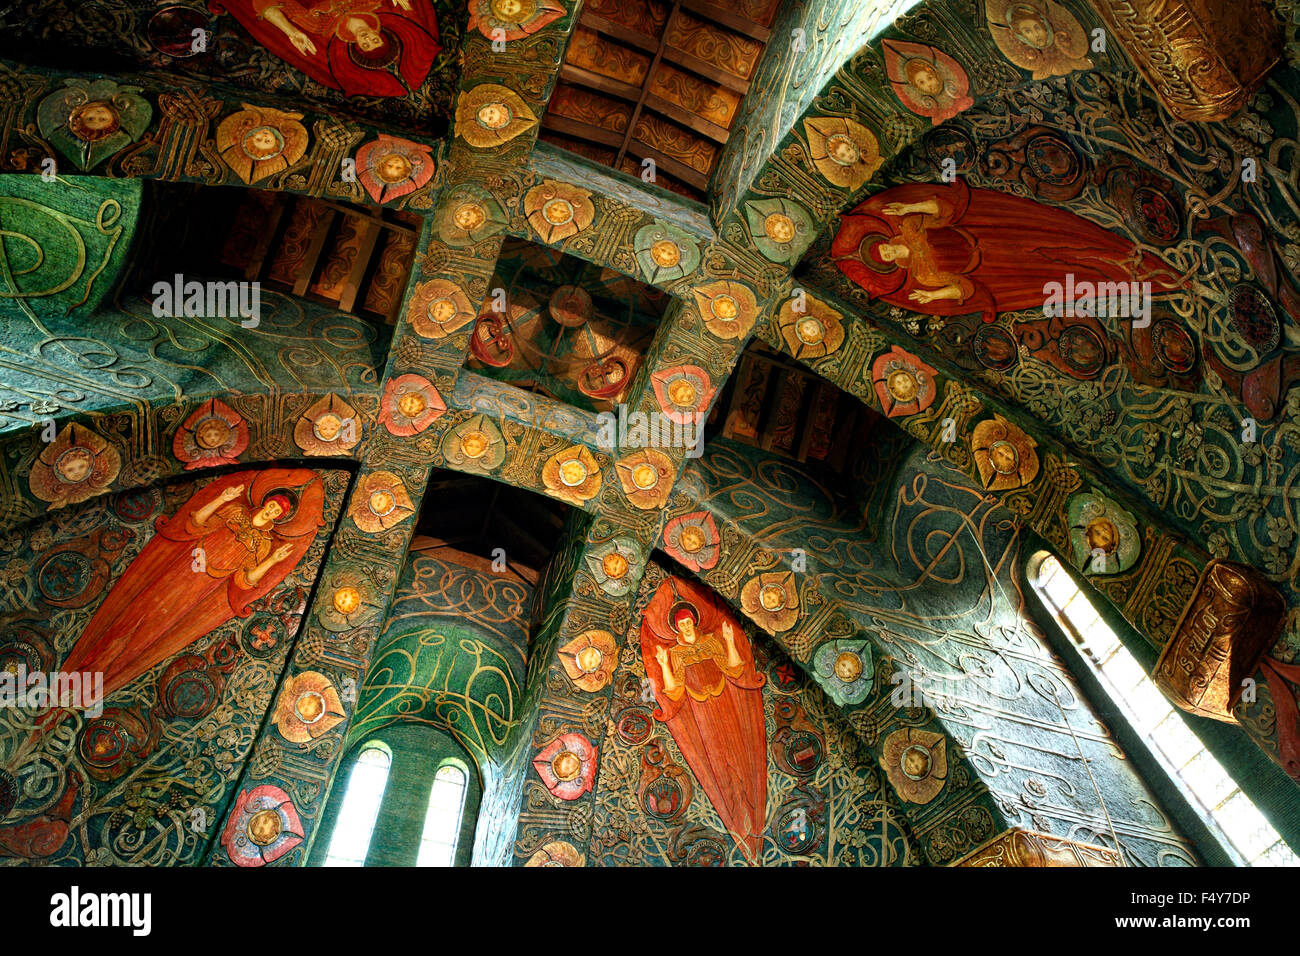 The elaborately decorated ceiling of the Watts Chapel. - Stock Image